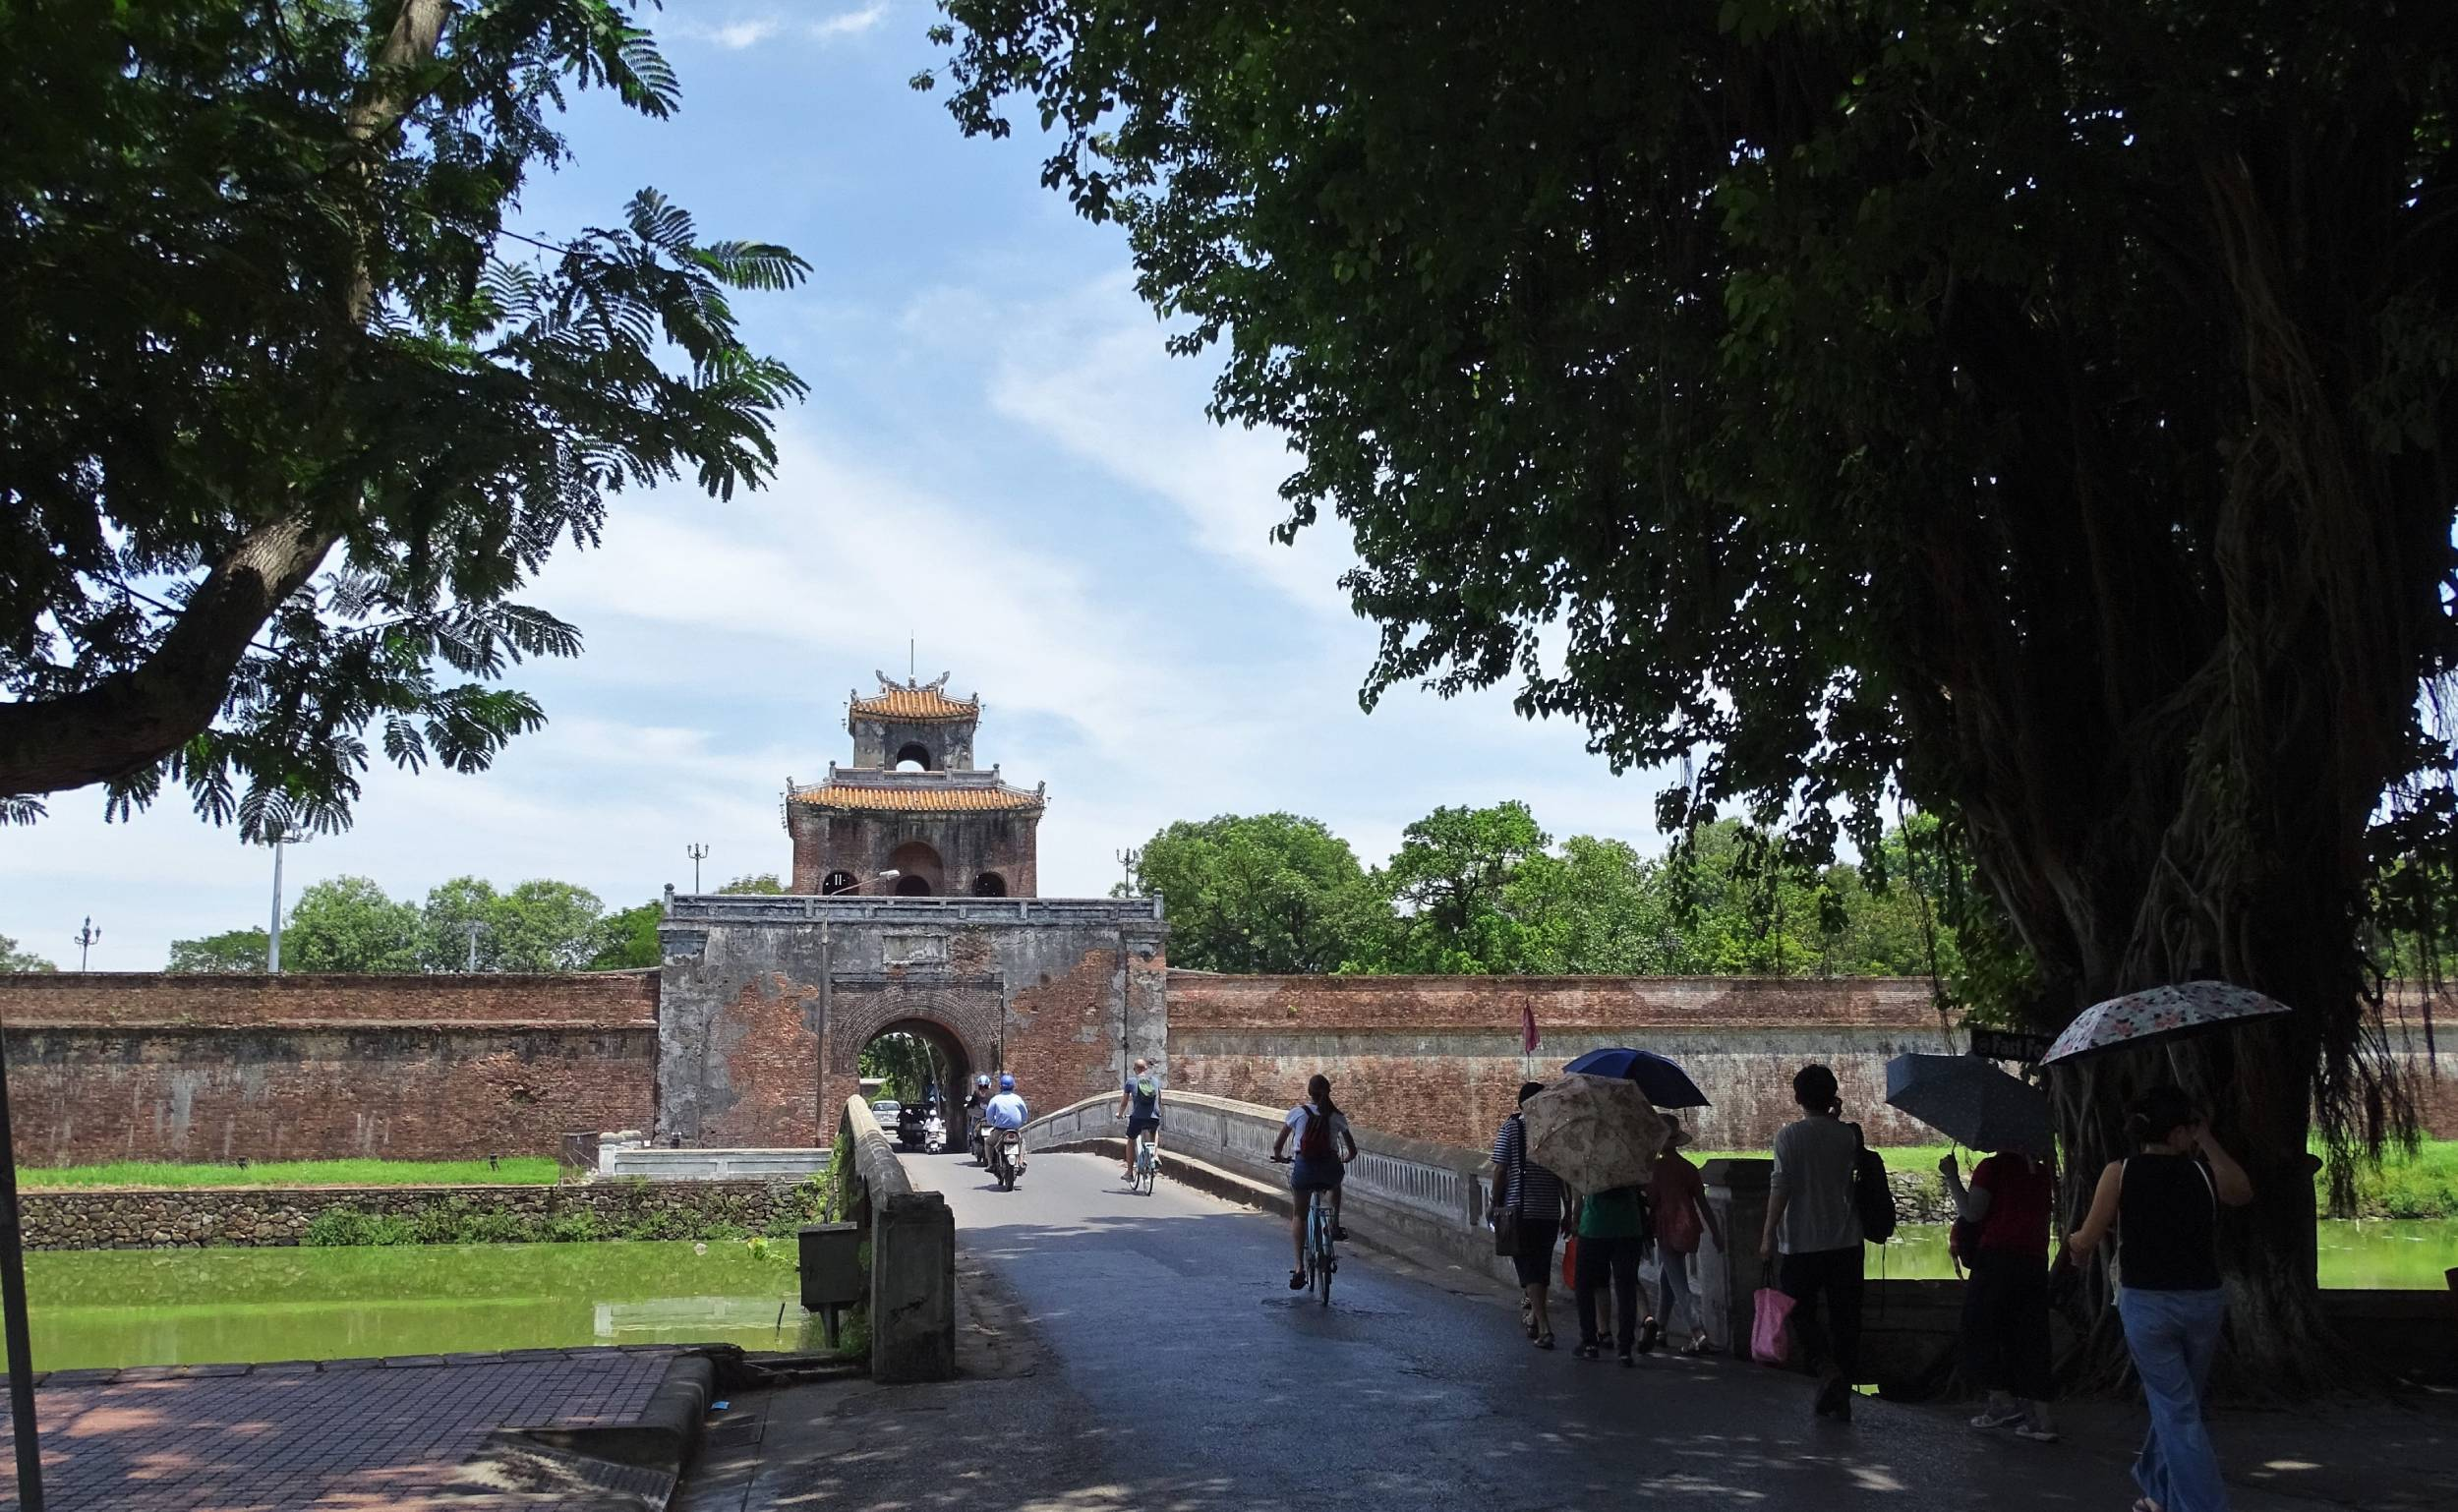 Pedestrians and two-wheel drivers crossing the bridge over the moat leading to the Hue Citadel